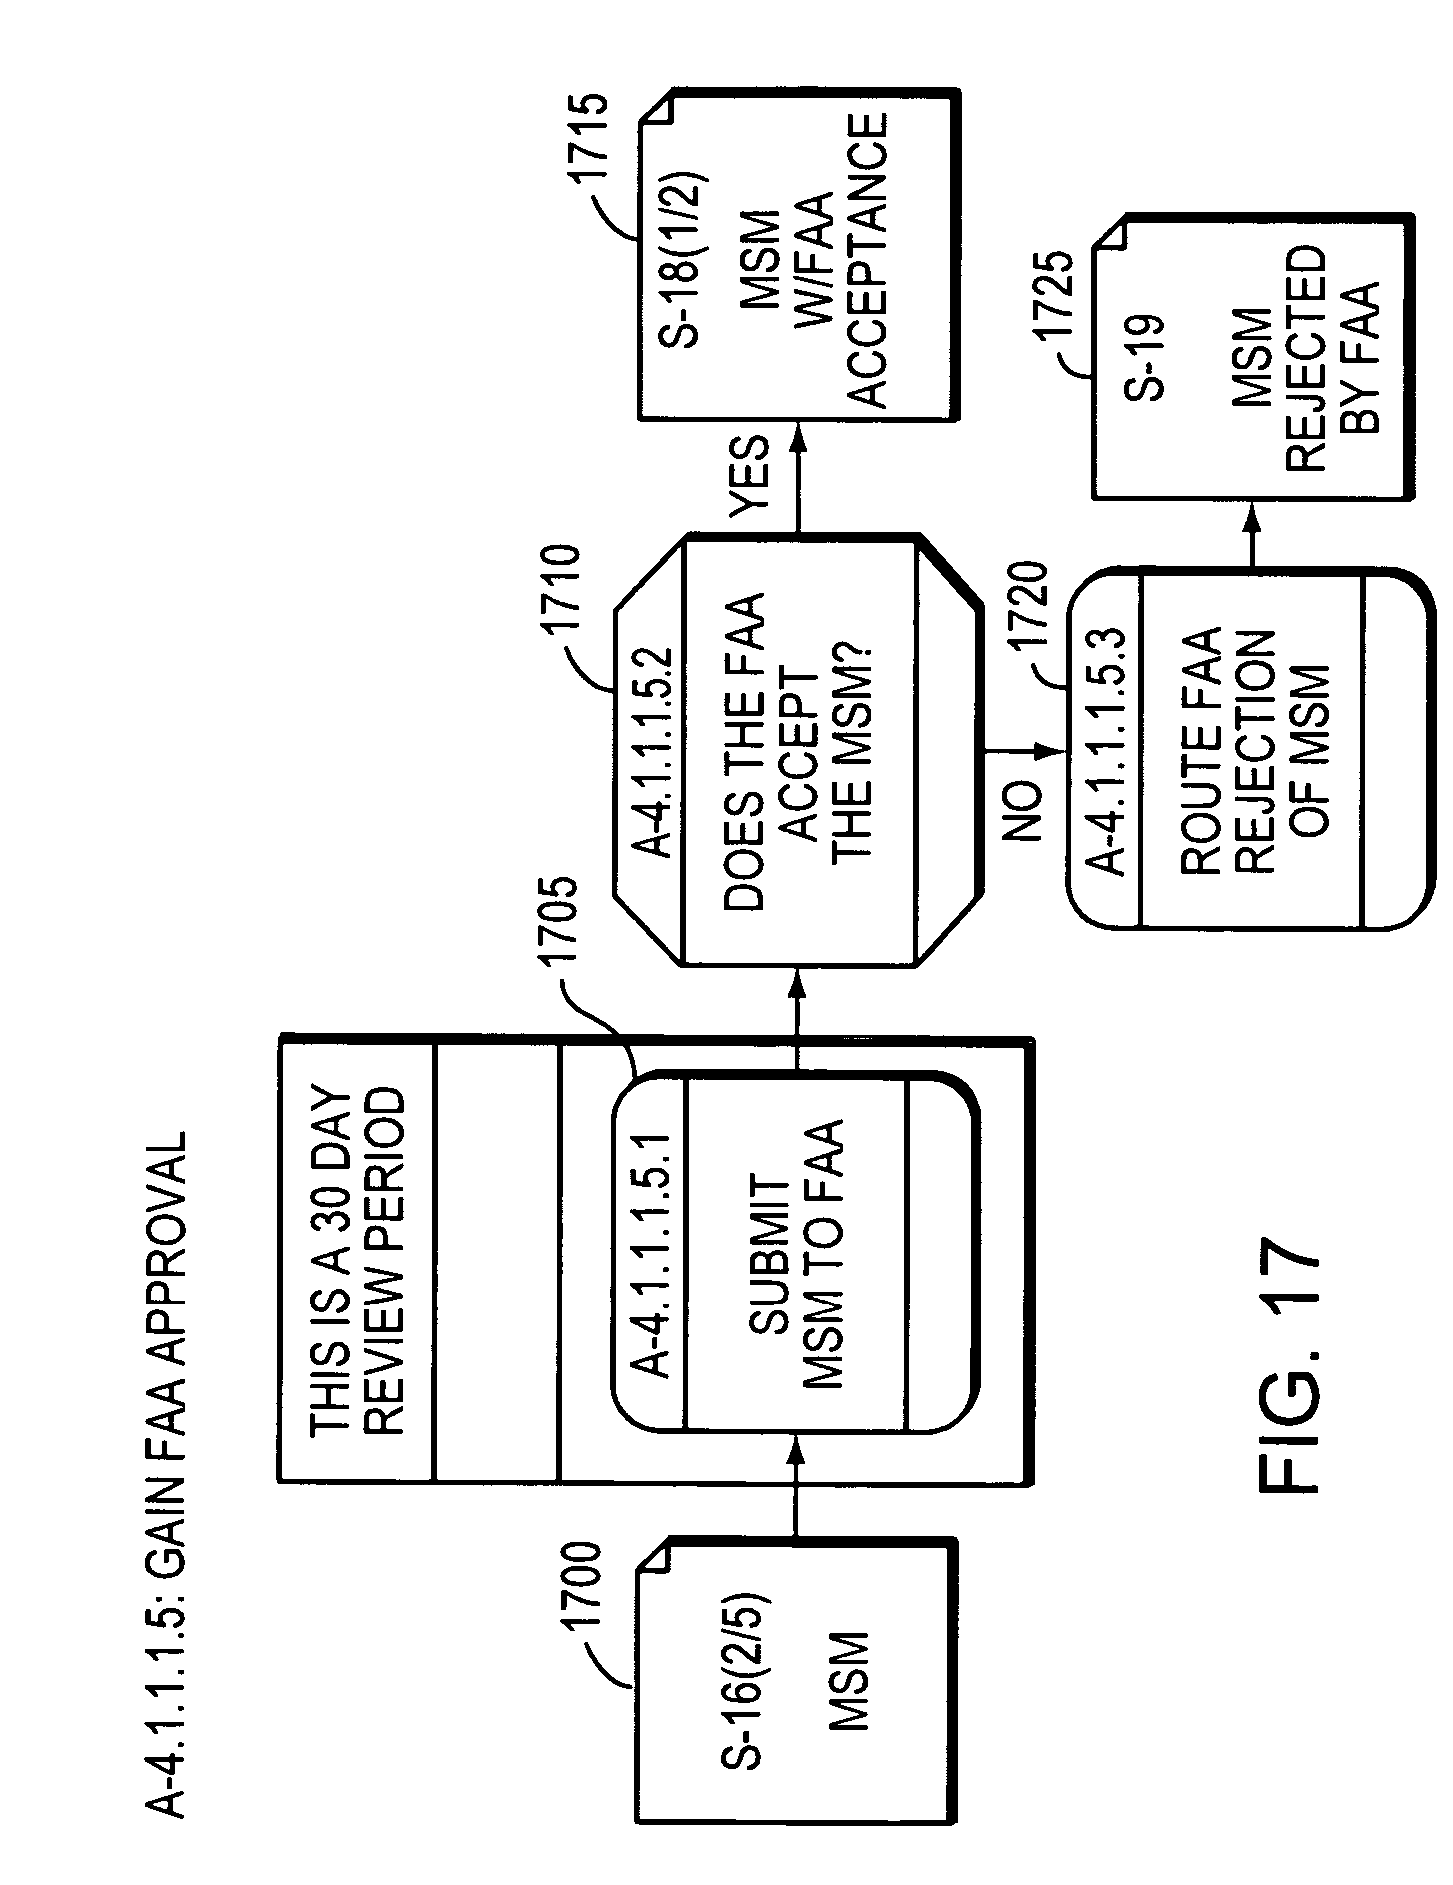 Msm cargo tracking - Patent Drawing